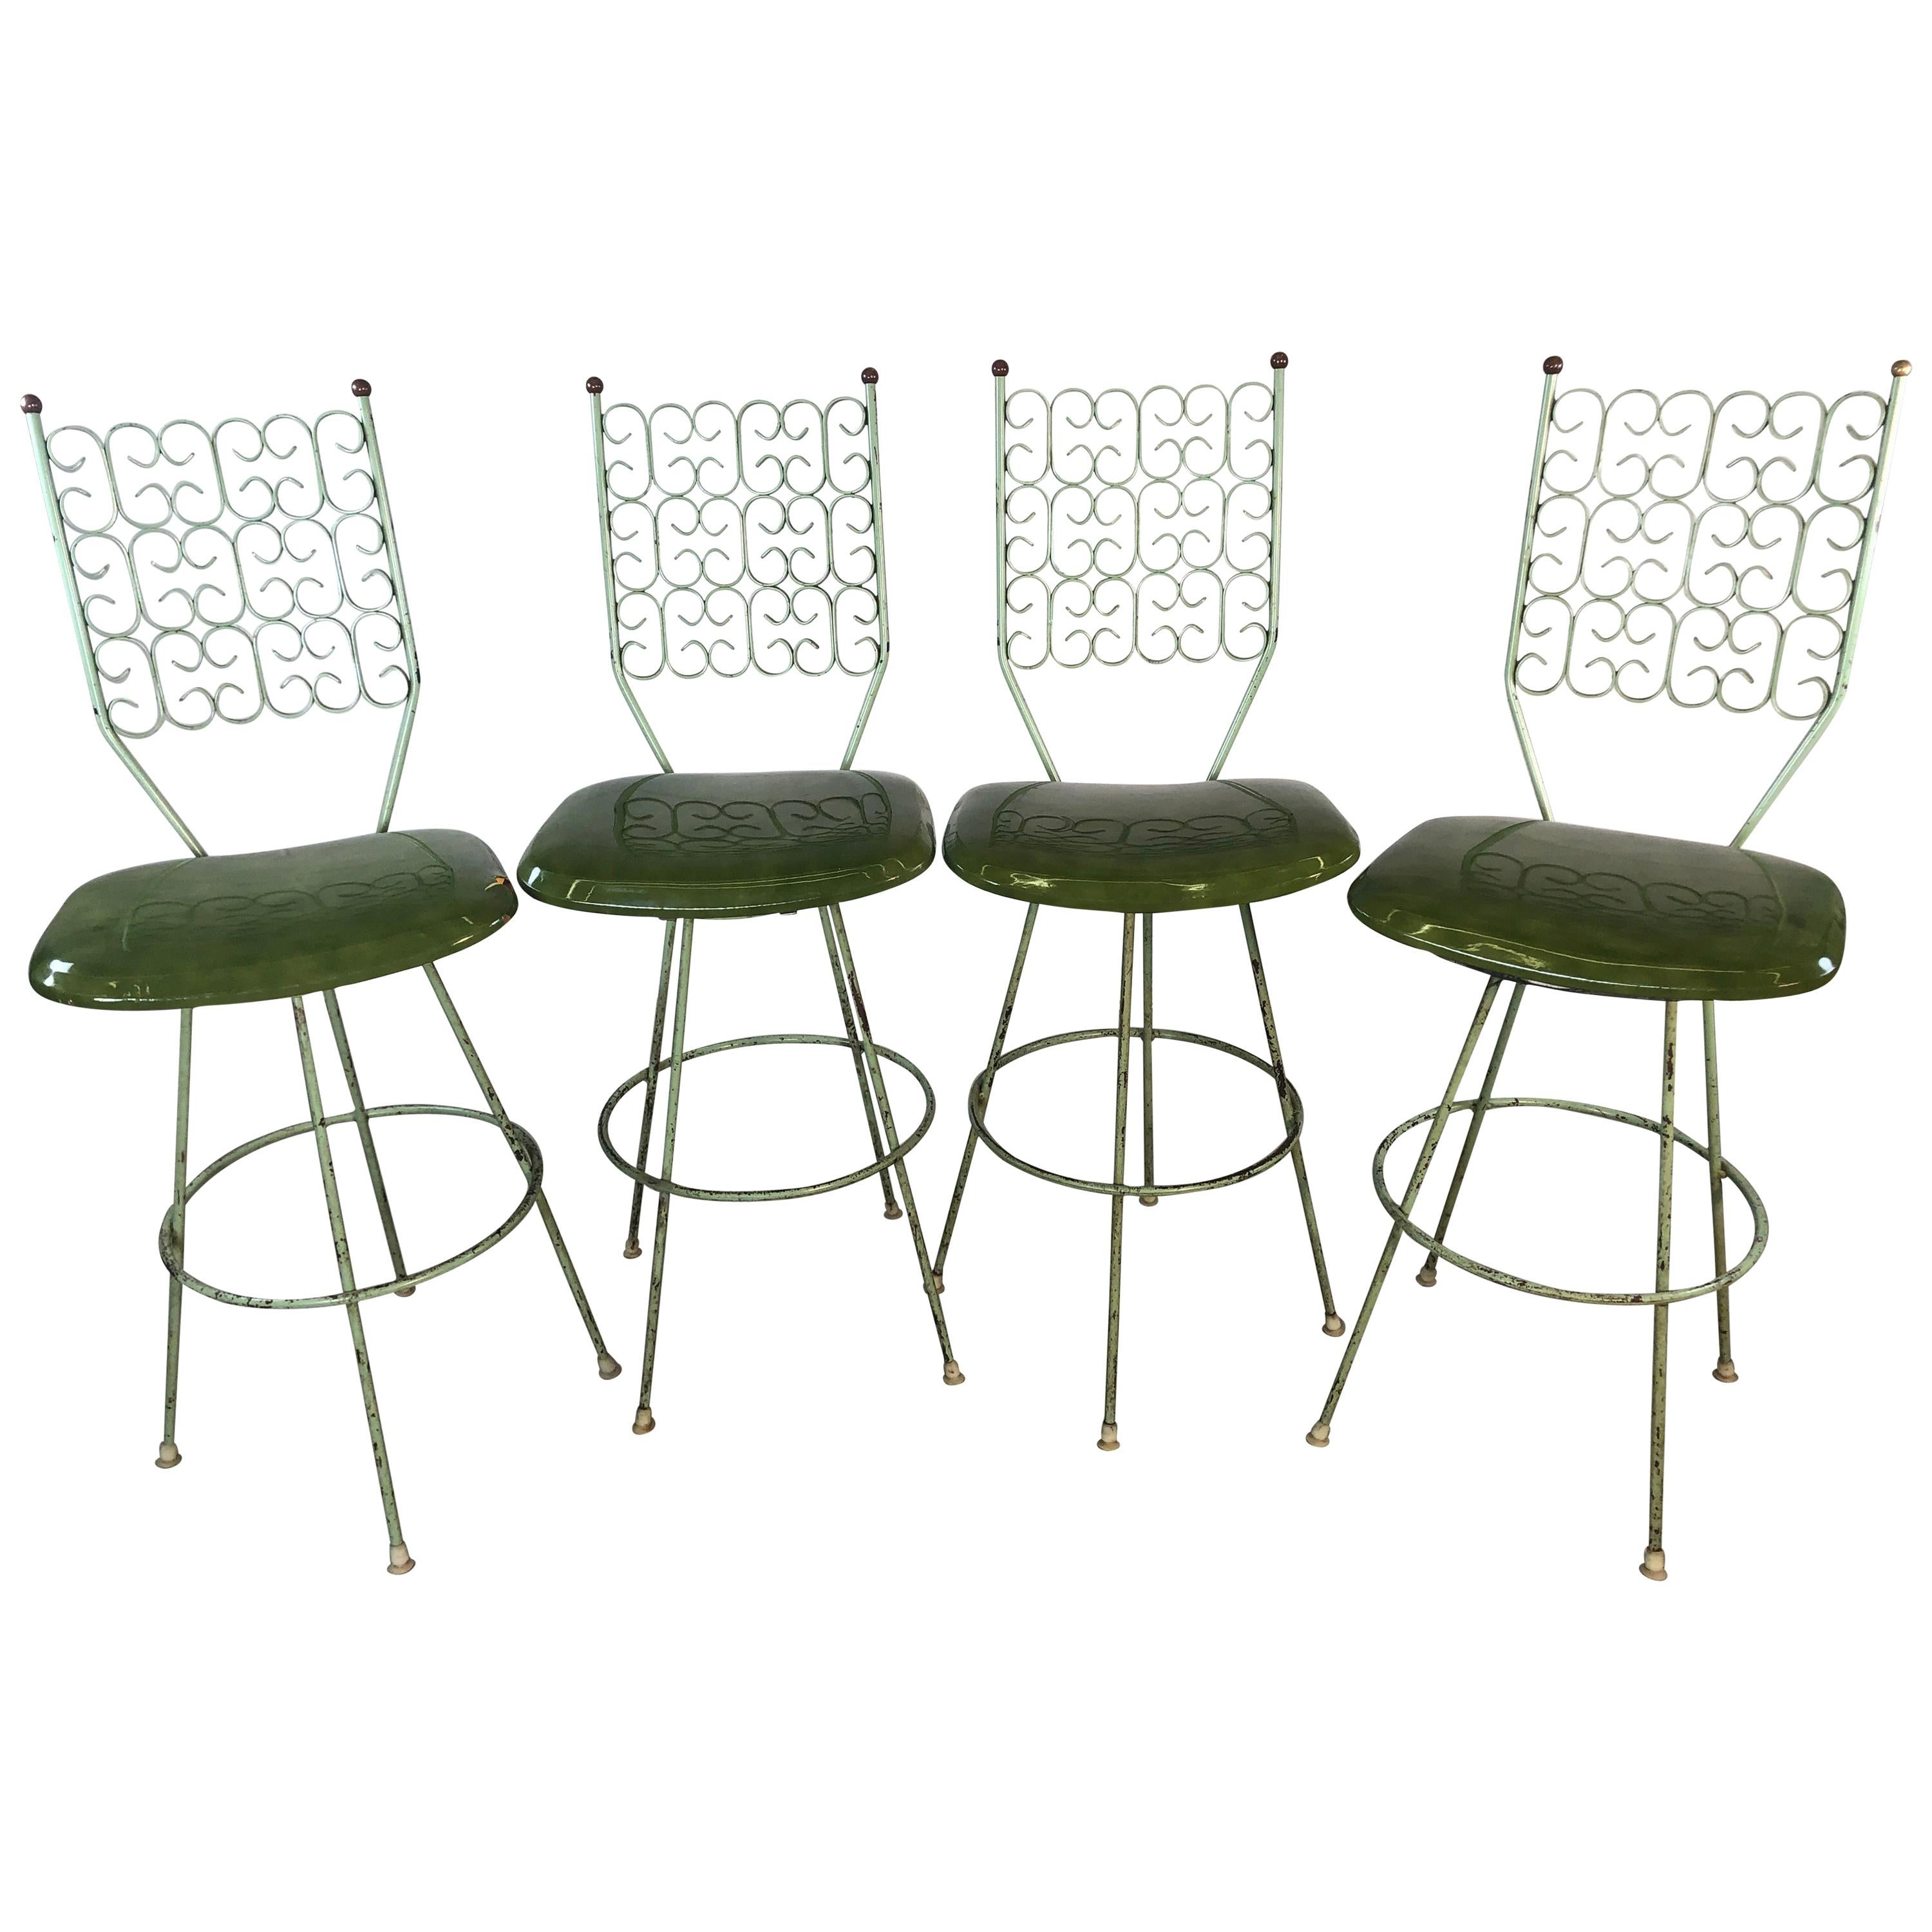 Merveilleux Arthur Umanoff Bar Stools By Boyeur Scott Furniture Co Granada Collection